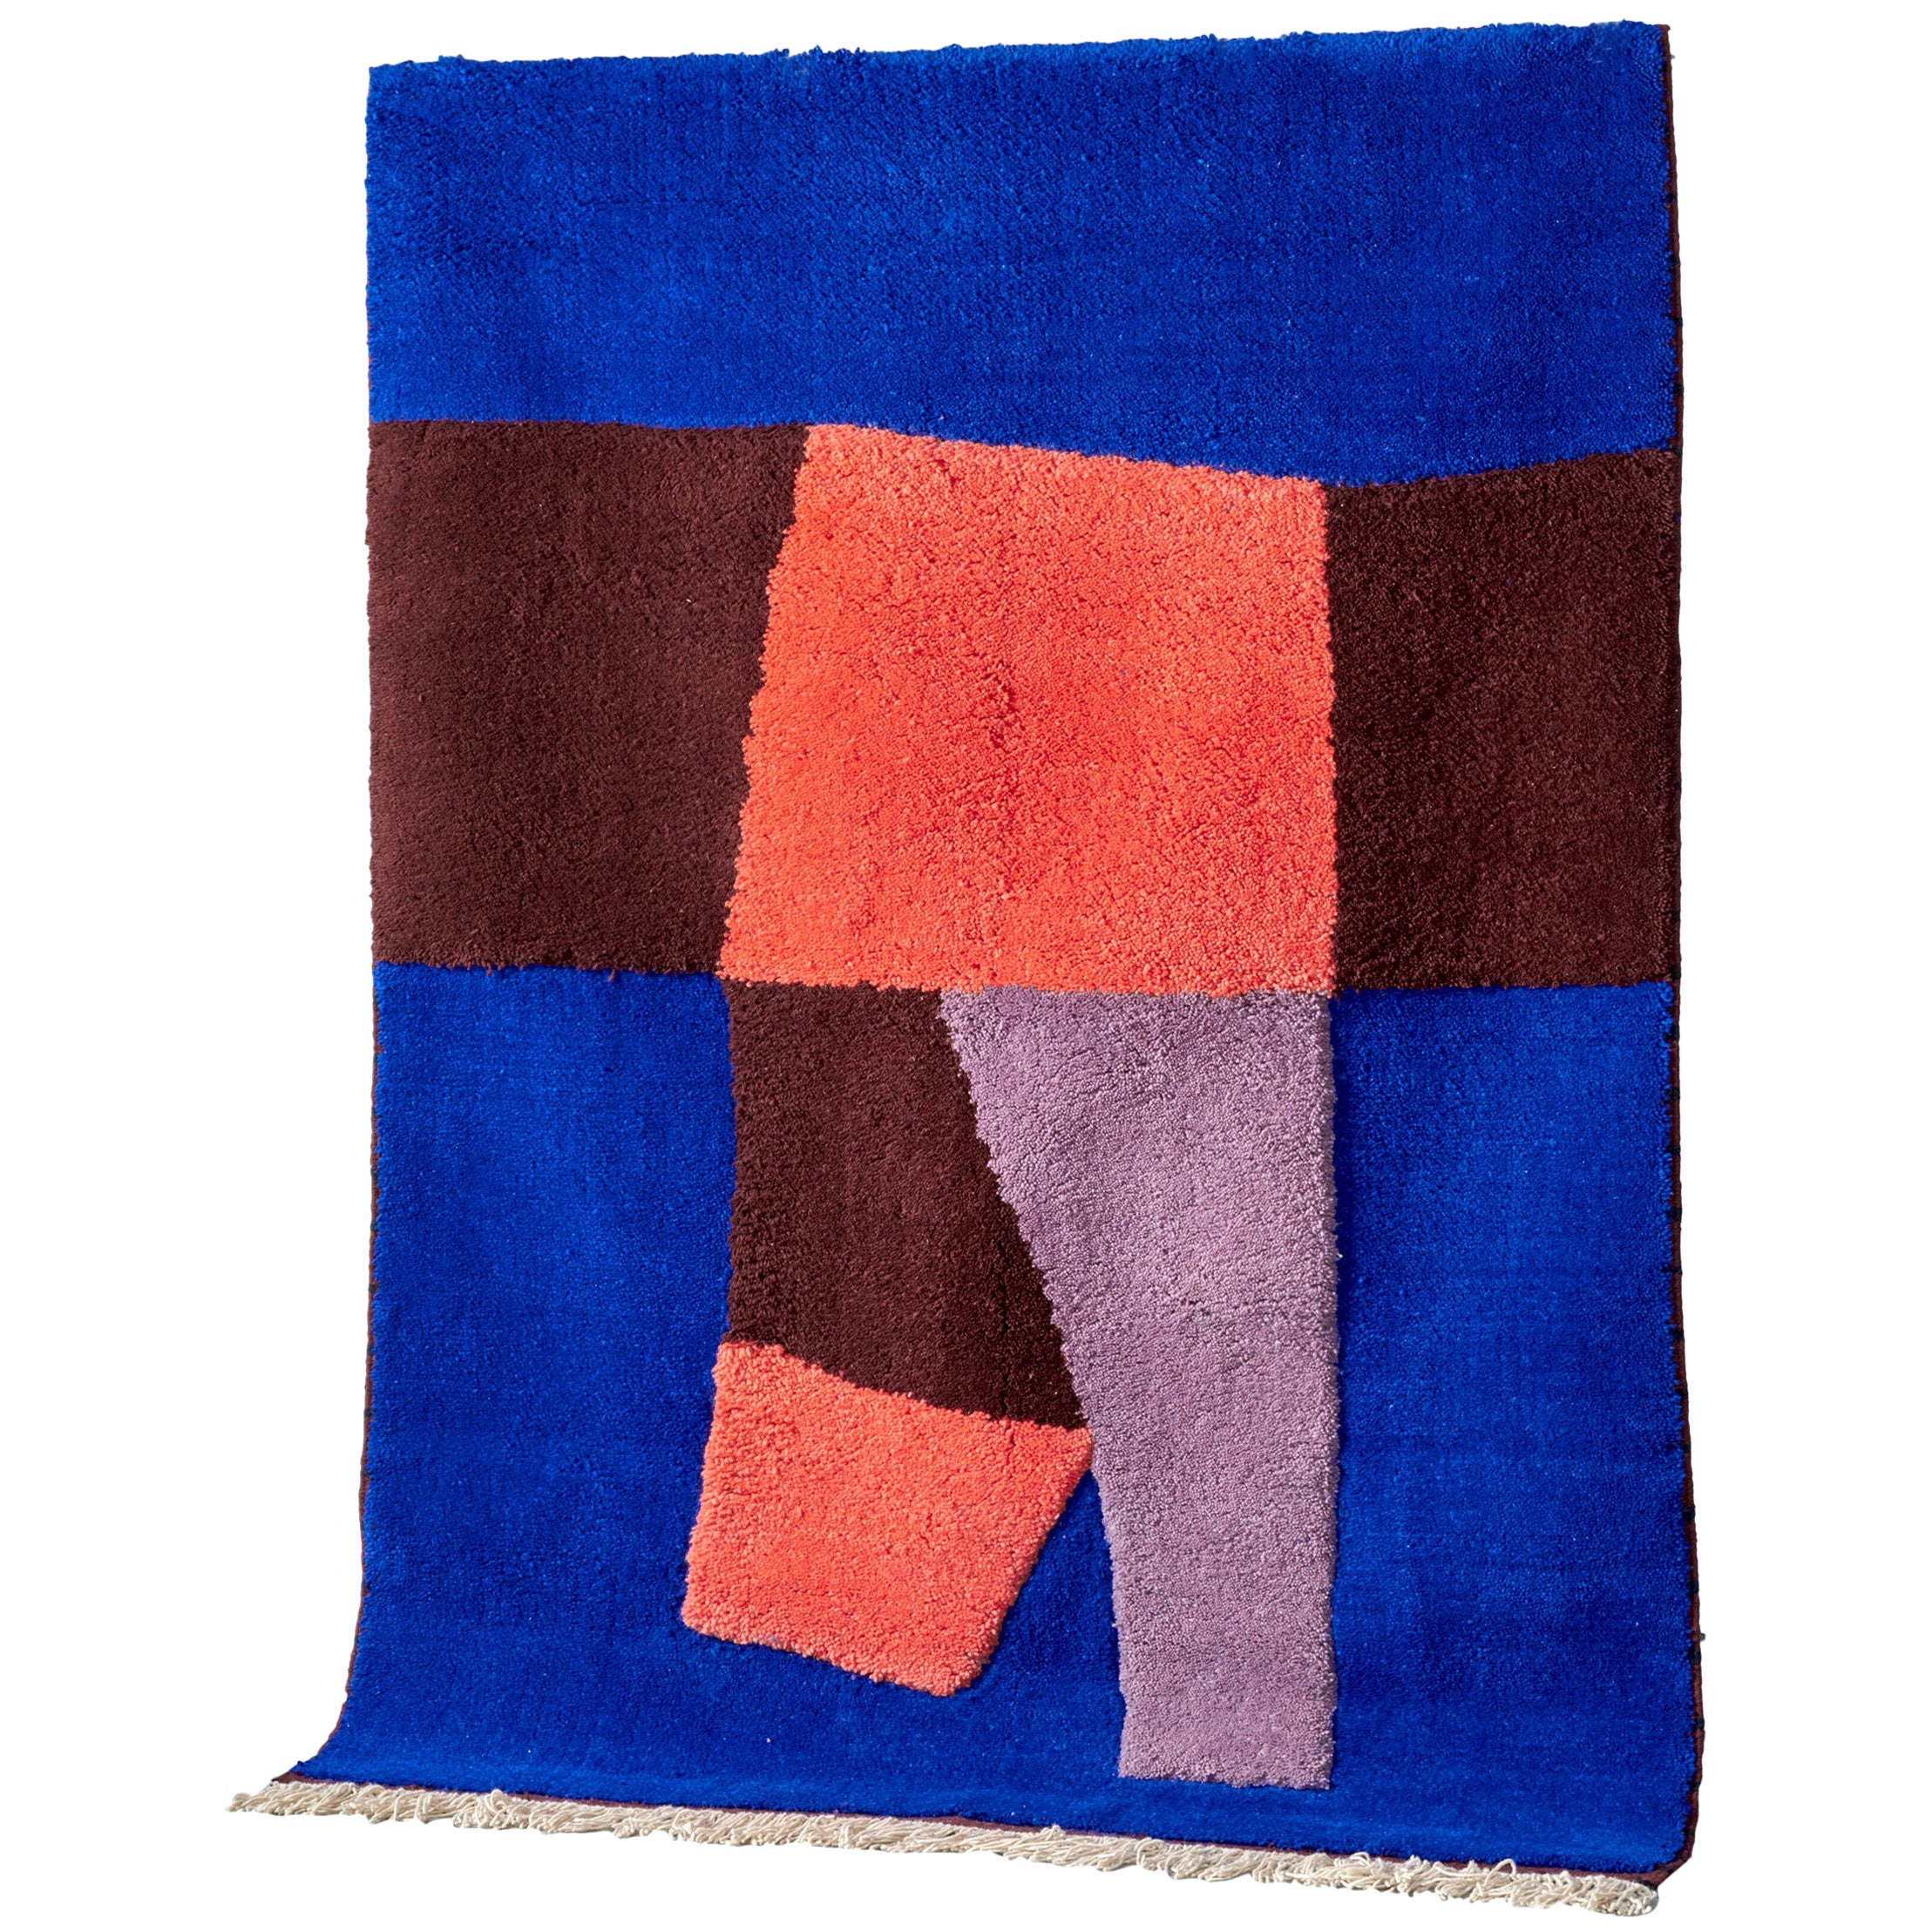 Moroccan Hand Knotted Wool Rug by Maria Jeglinska, 9ft x 12ft